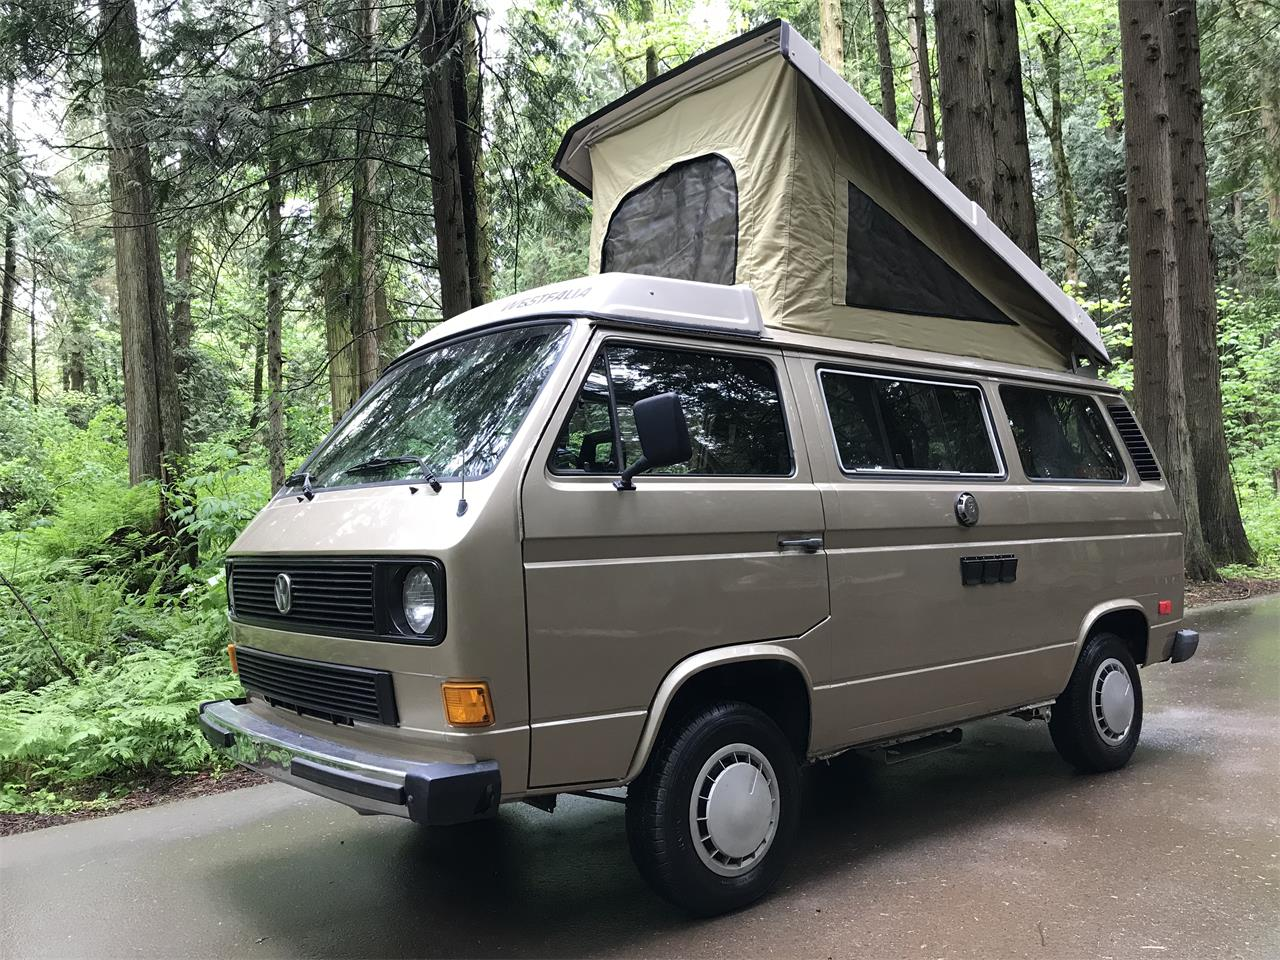 1985 Volkswagen Vanagon For Sale Classiccars Com Cc 1183750